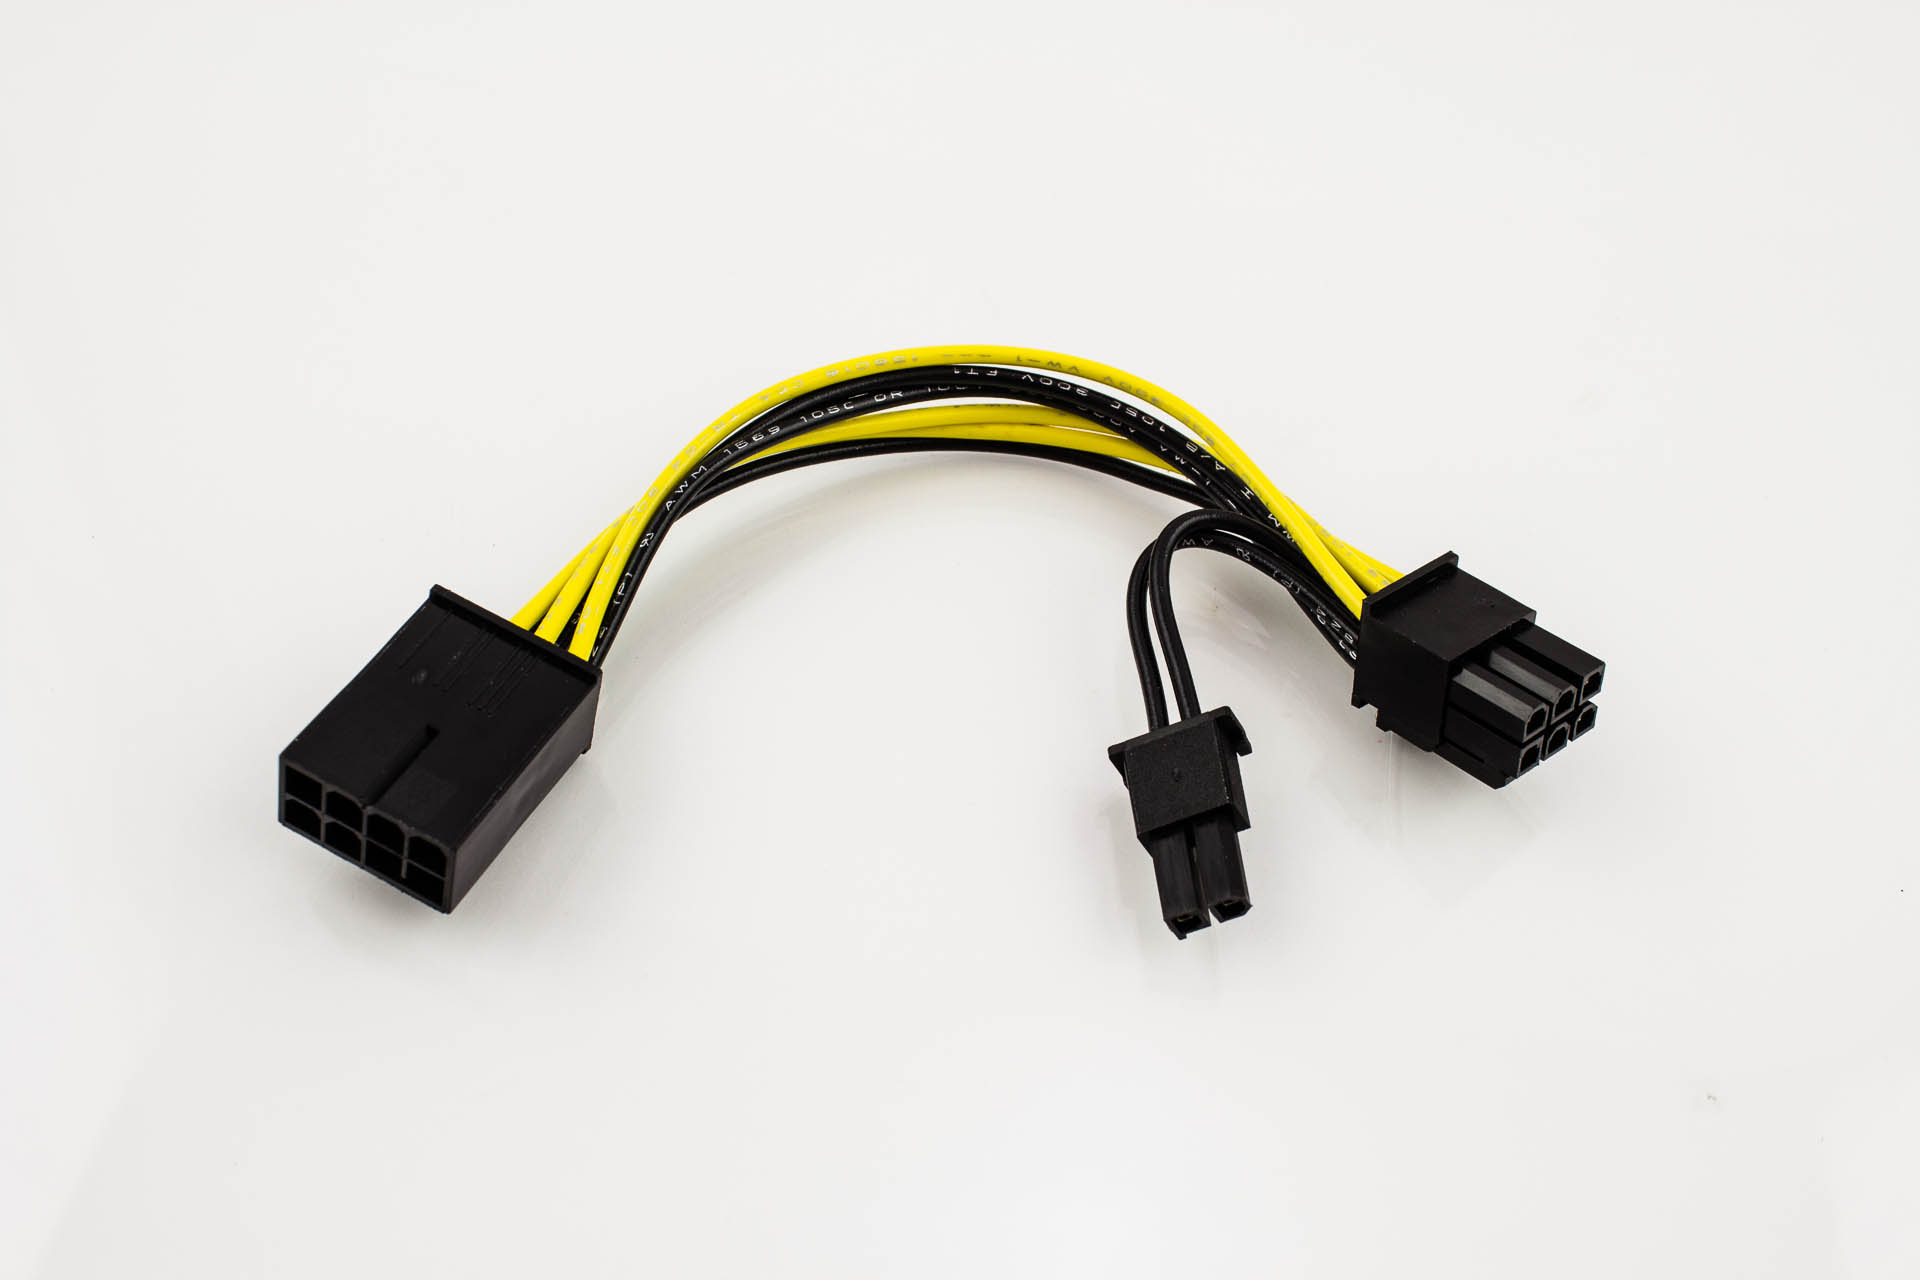 pci express power adapter cable 8p to 6p 2p pactech